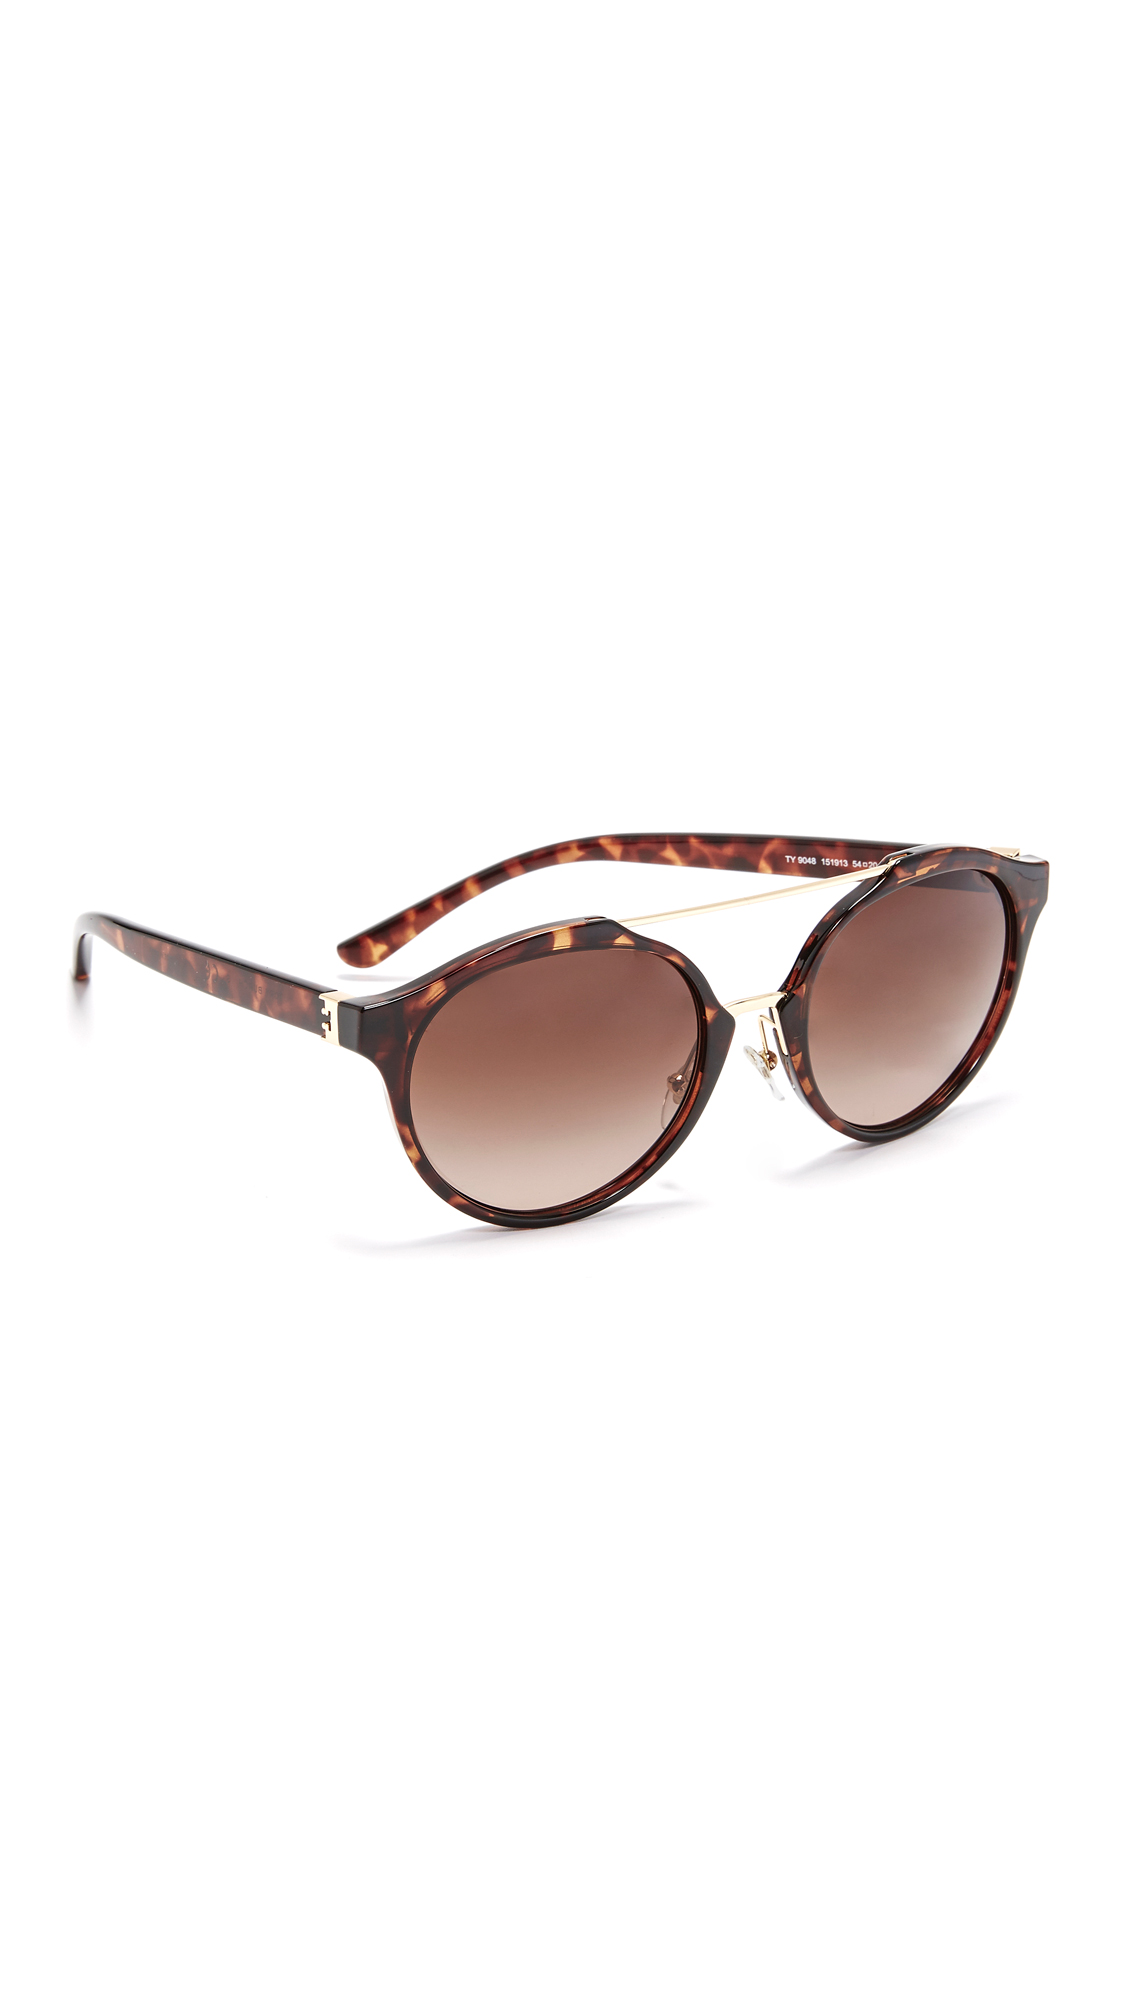 Modern Tory Burch aviator sunglasses with tortoiseshell frames and polished bars at the bridge. Adjustable silicone nose pads. Case and cleaning cloth included. Aviator frame. Non polarized lenses. Imported, China. Measurements Width: 6in / 15cm Height: 2.25in / 5.5